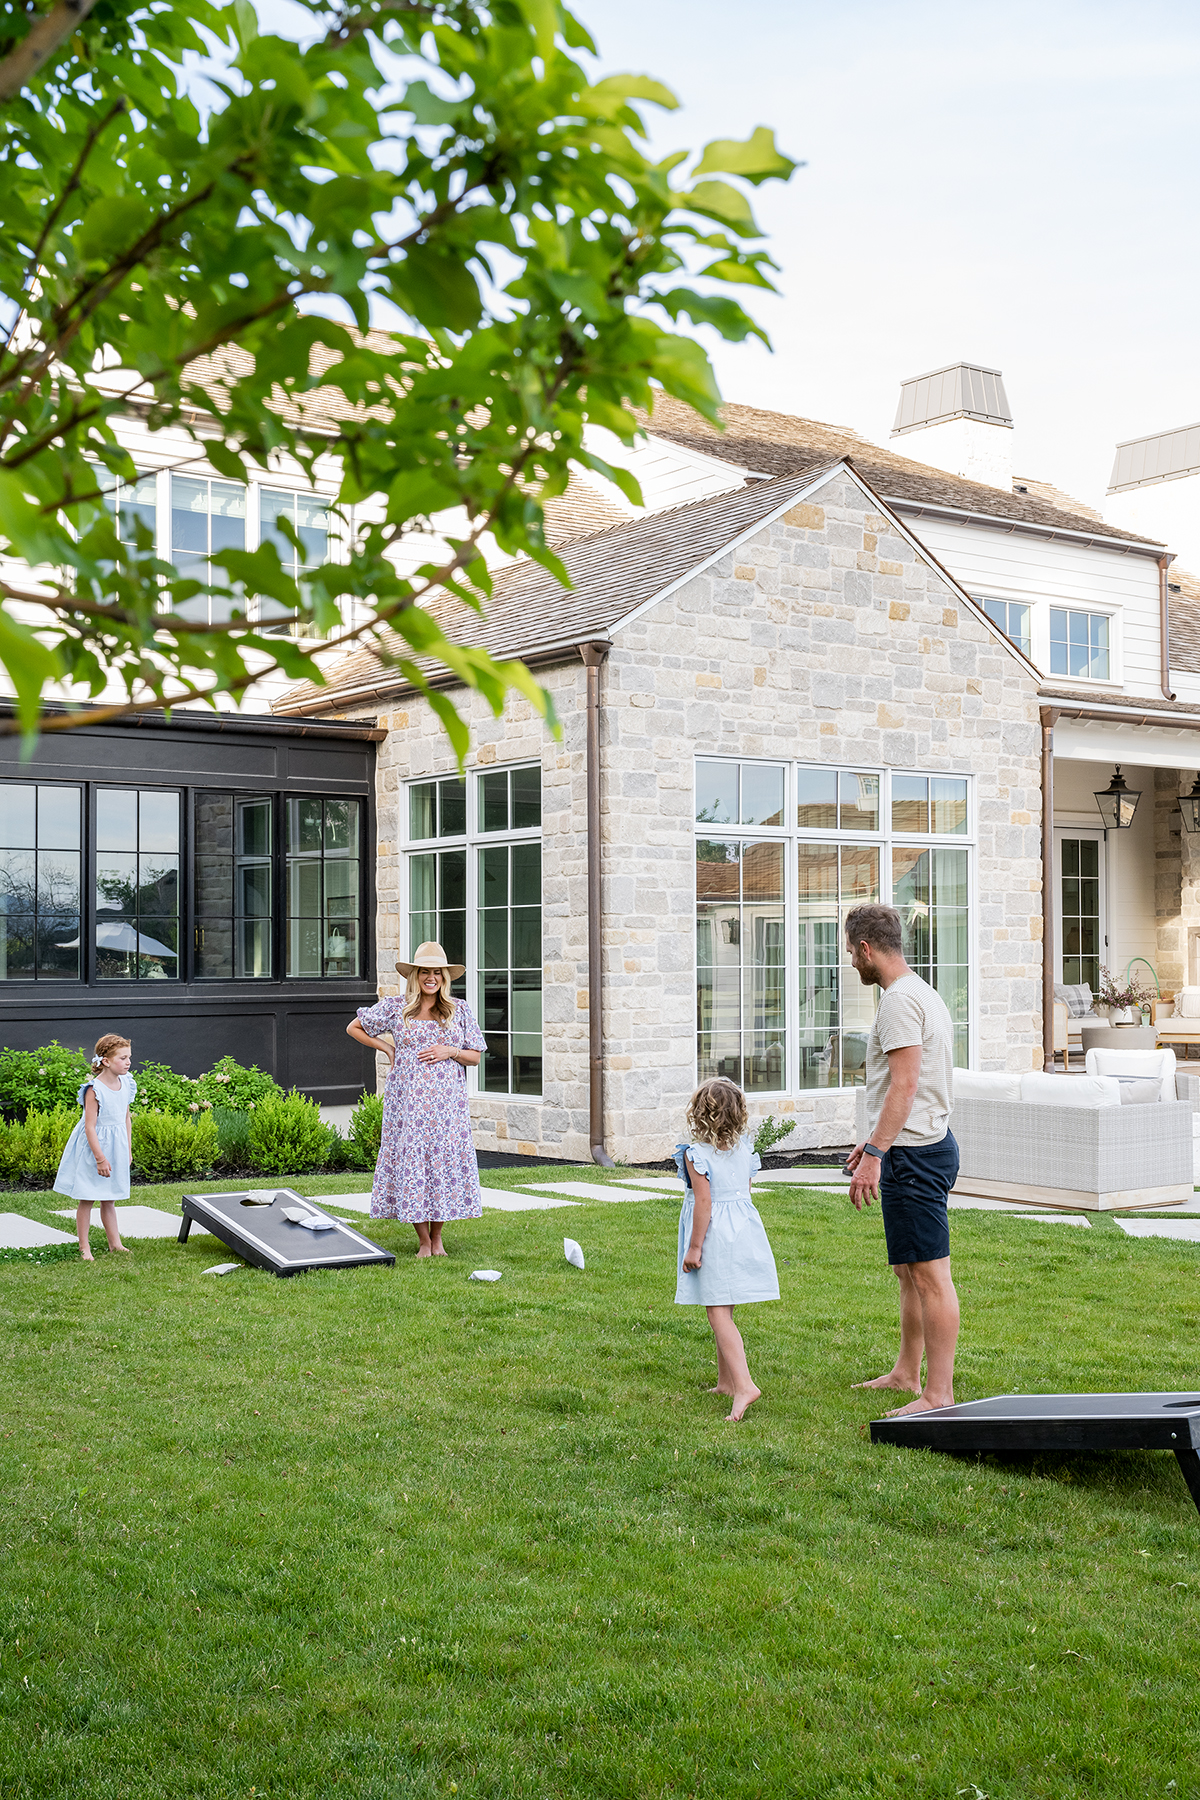 Our Favorite Elevated Backyard Games